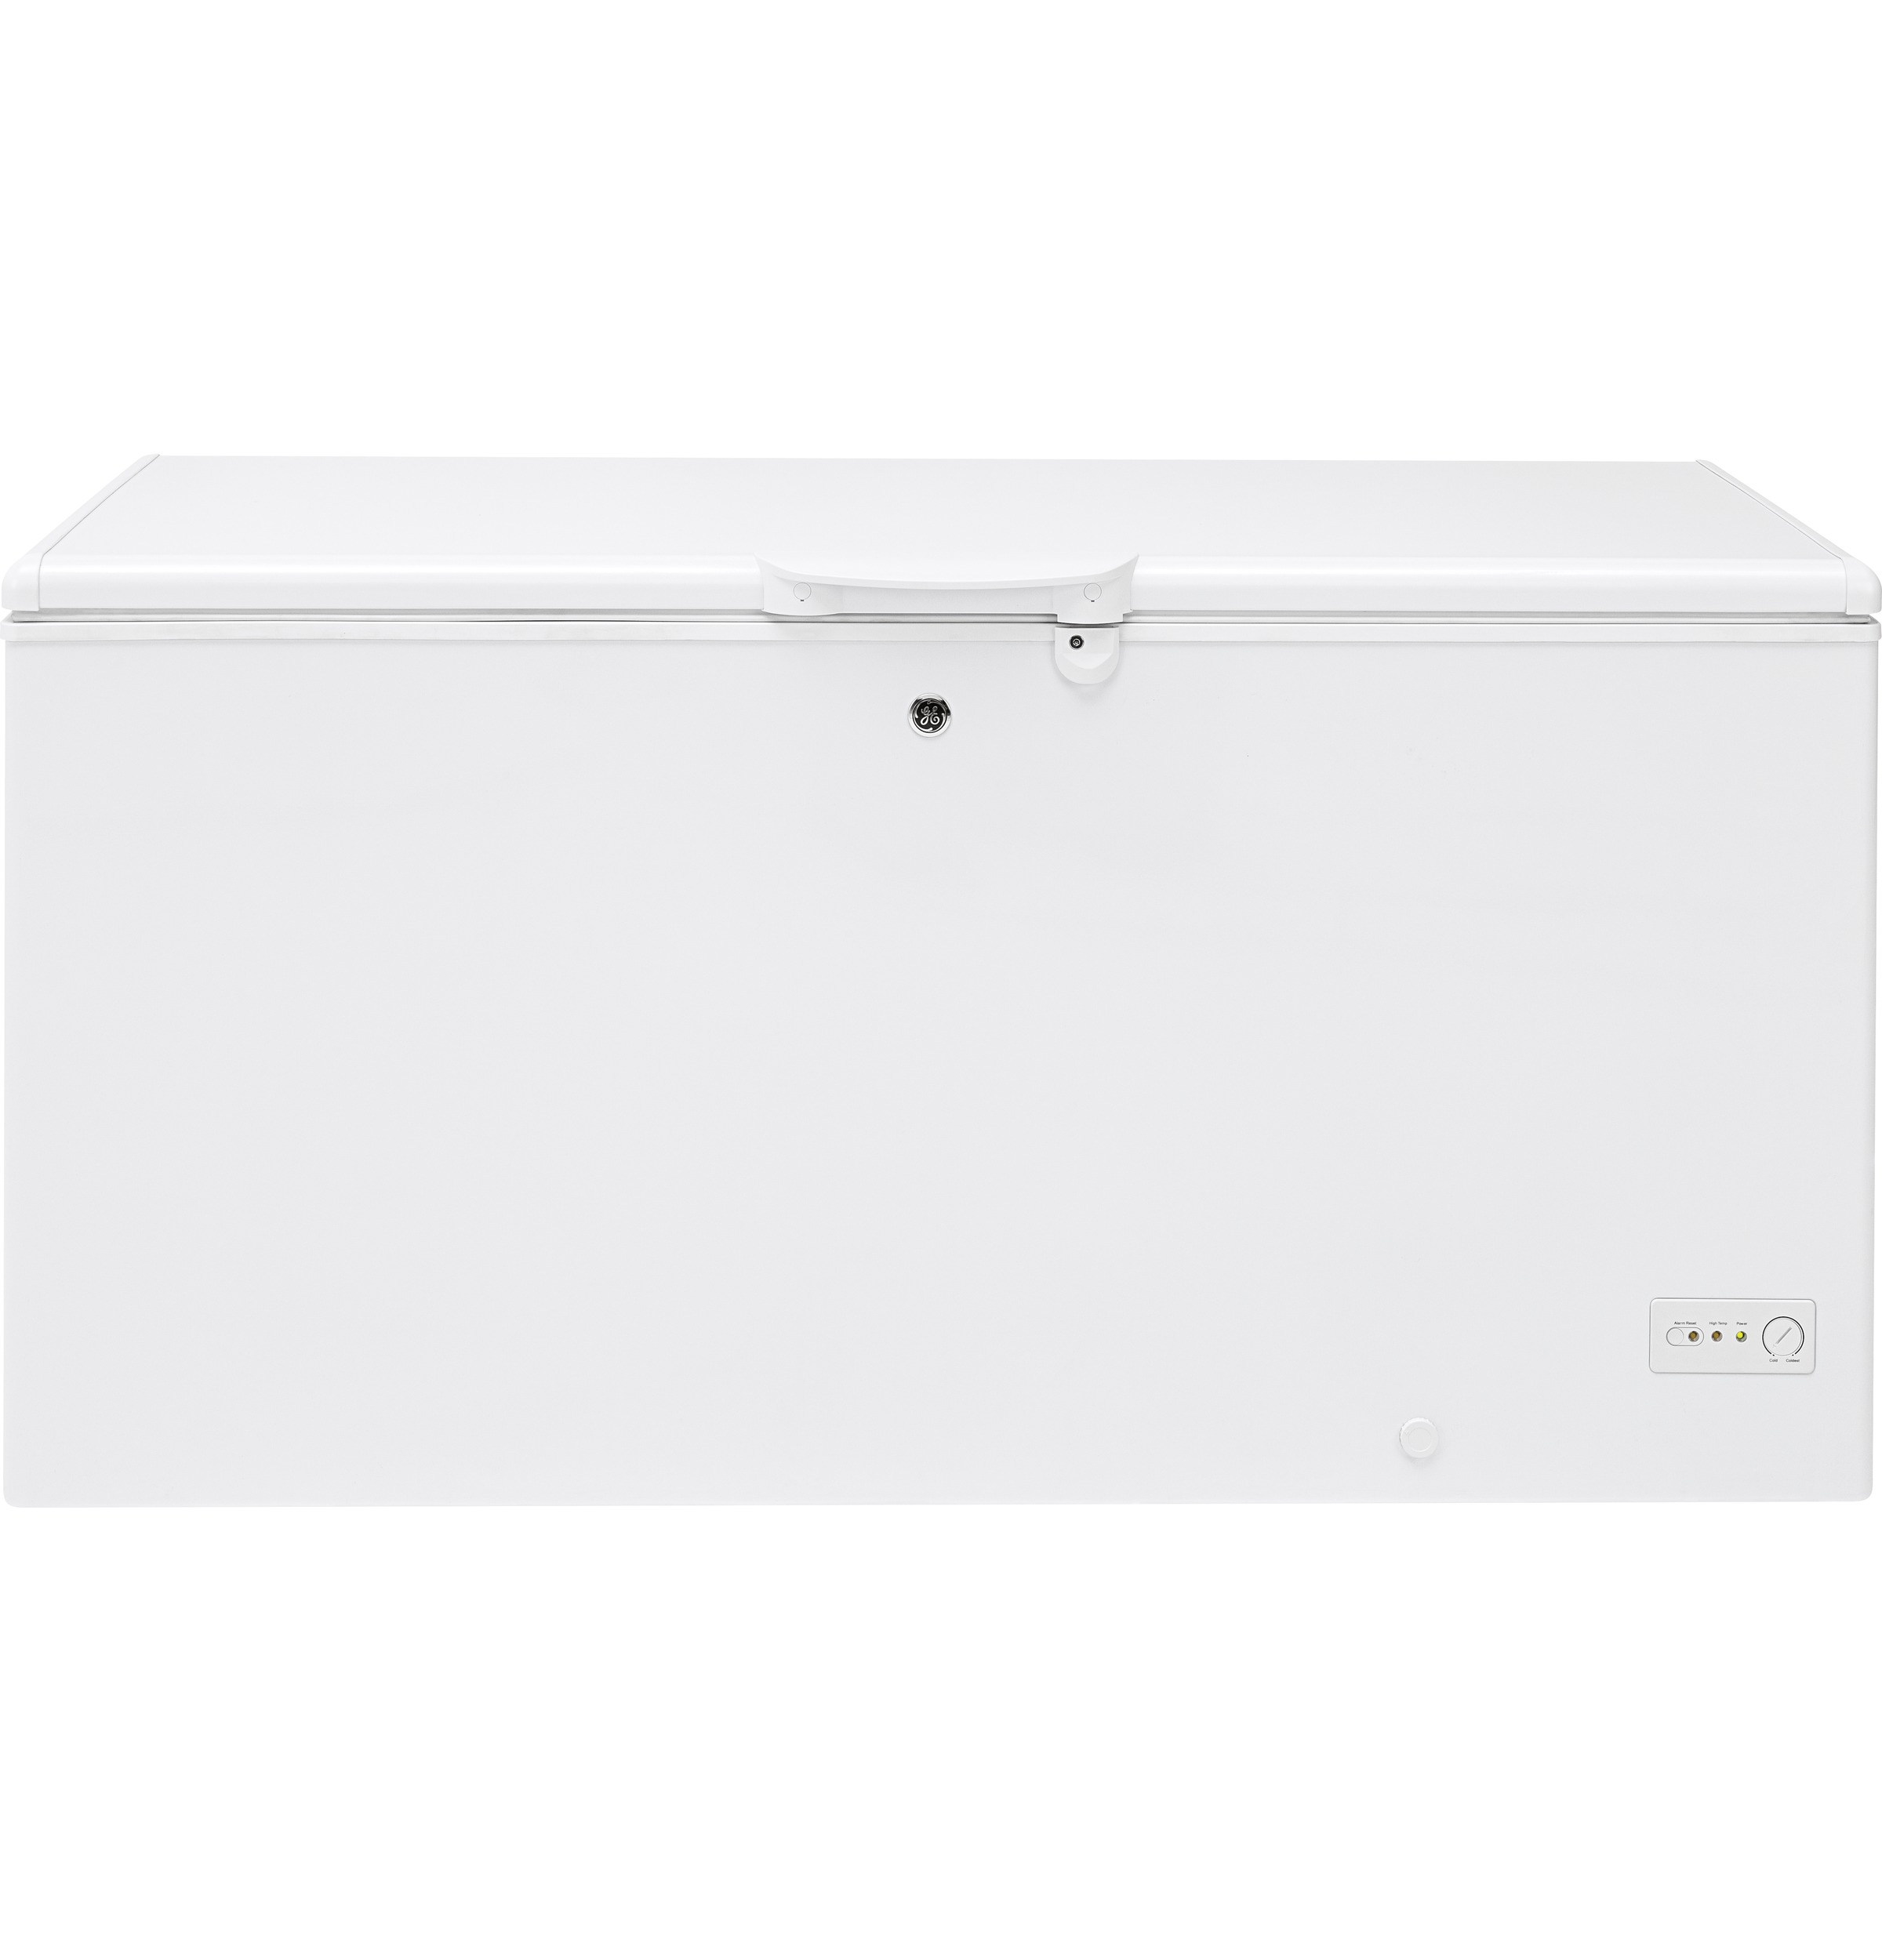 GE GE® 15.7 Cu. Ft. Manual Defrost Chest Freezer